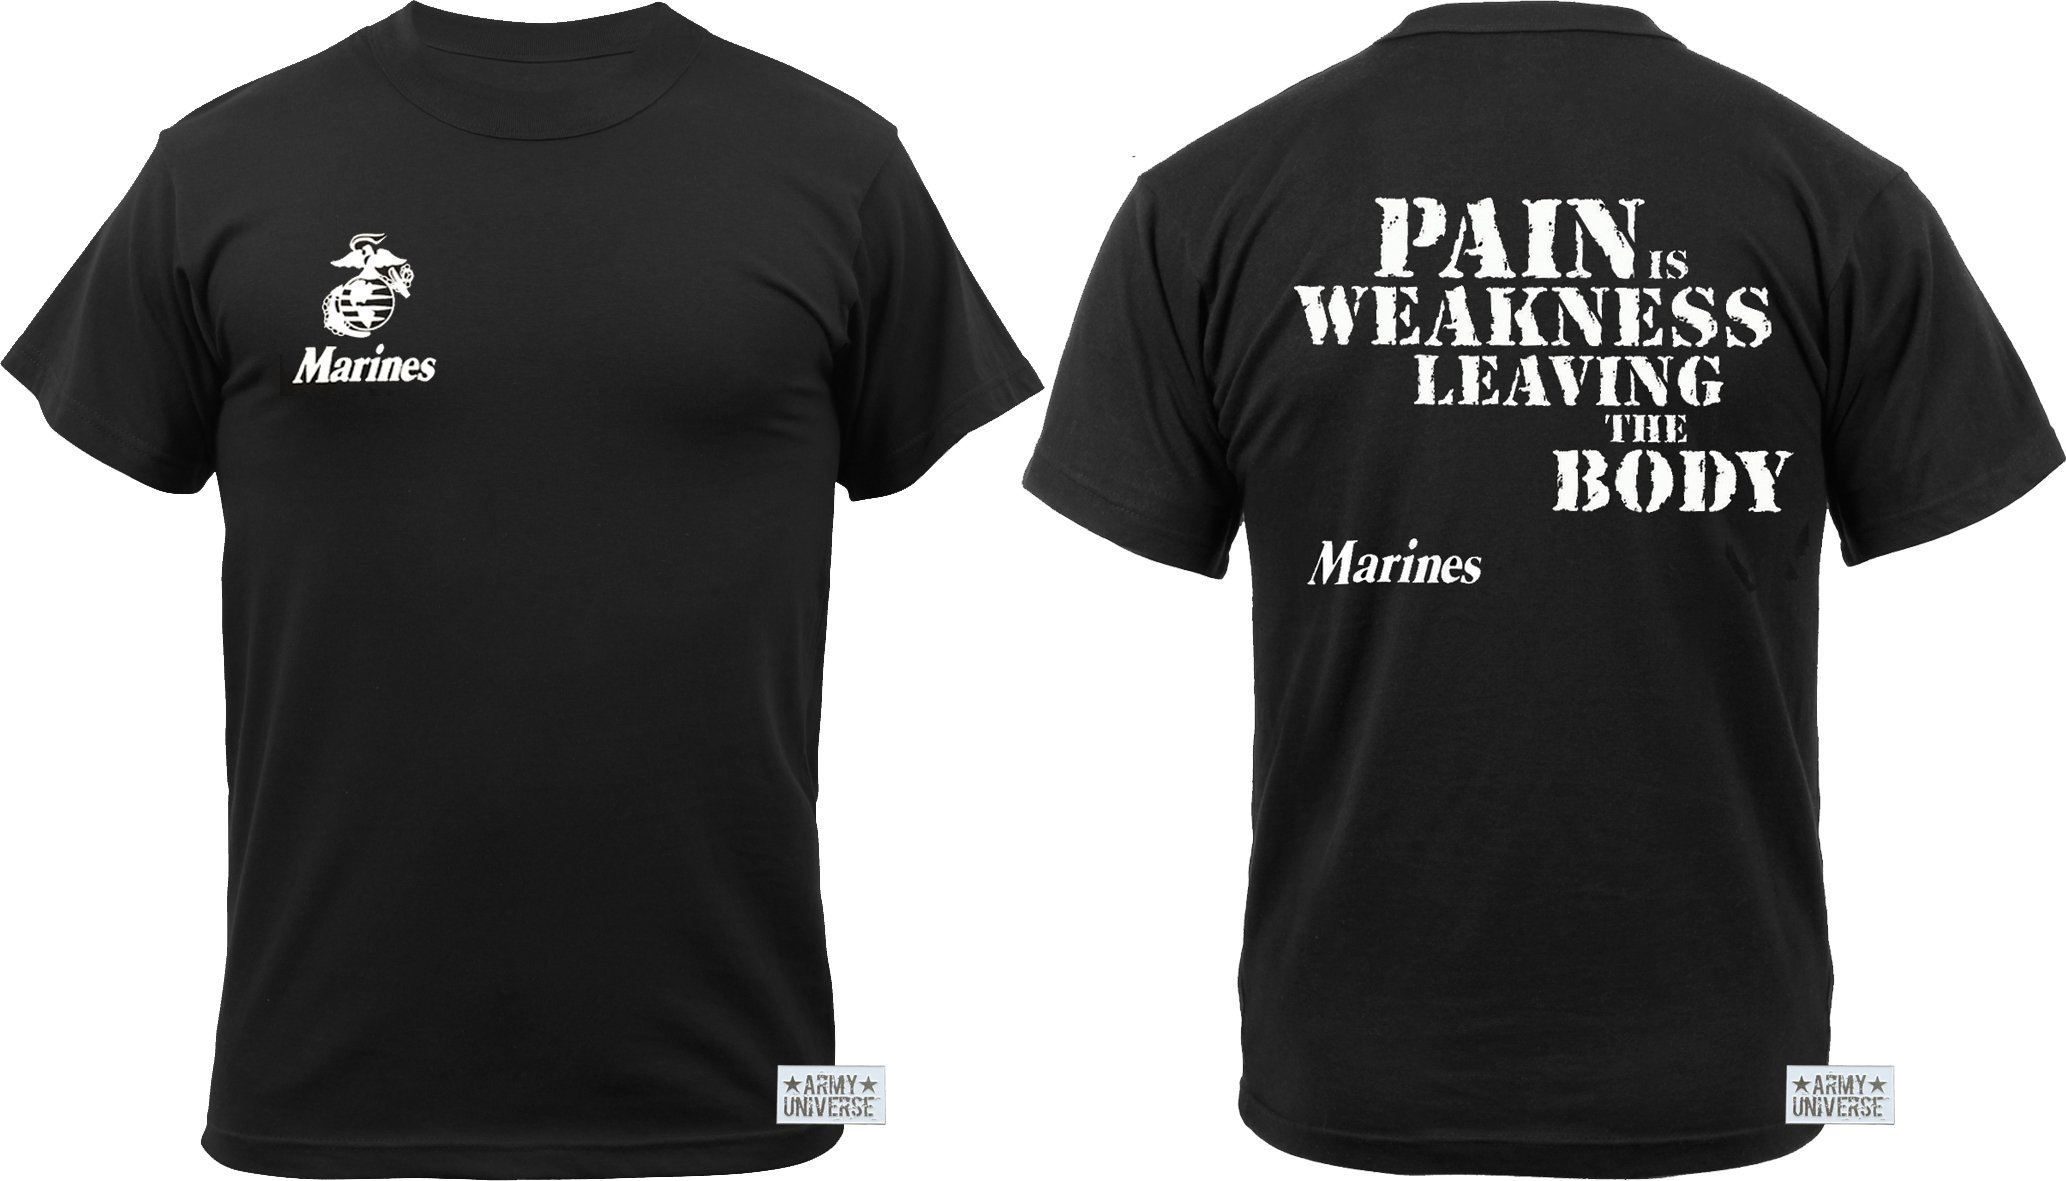 Army Universe Black USMC US Marines Pain is Weakness Leaving The Body Double Sided T-Shirt Pin (Size X-Large / 45''-49'')